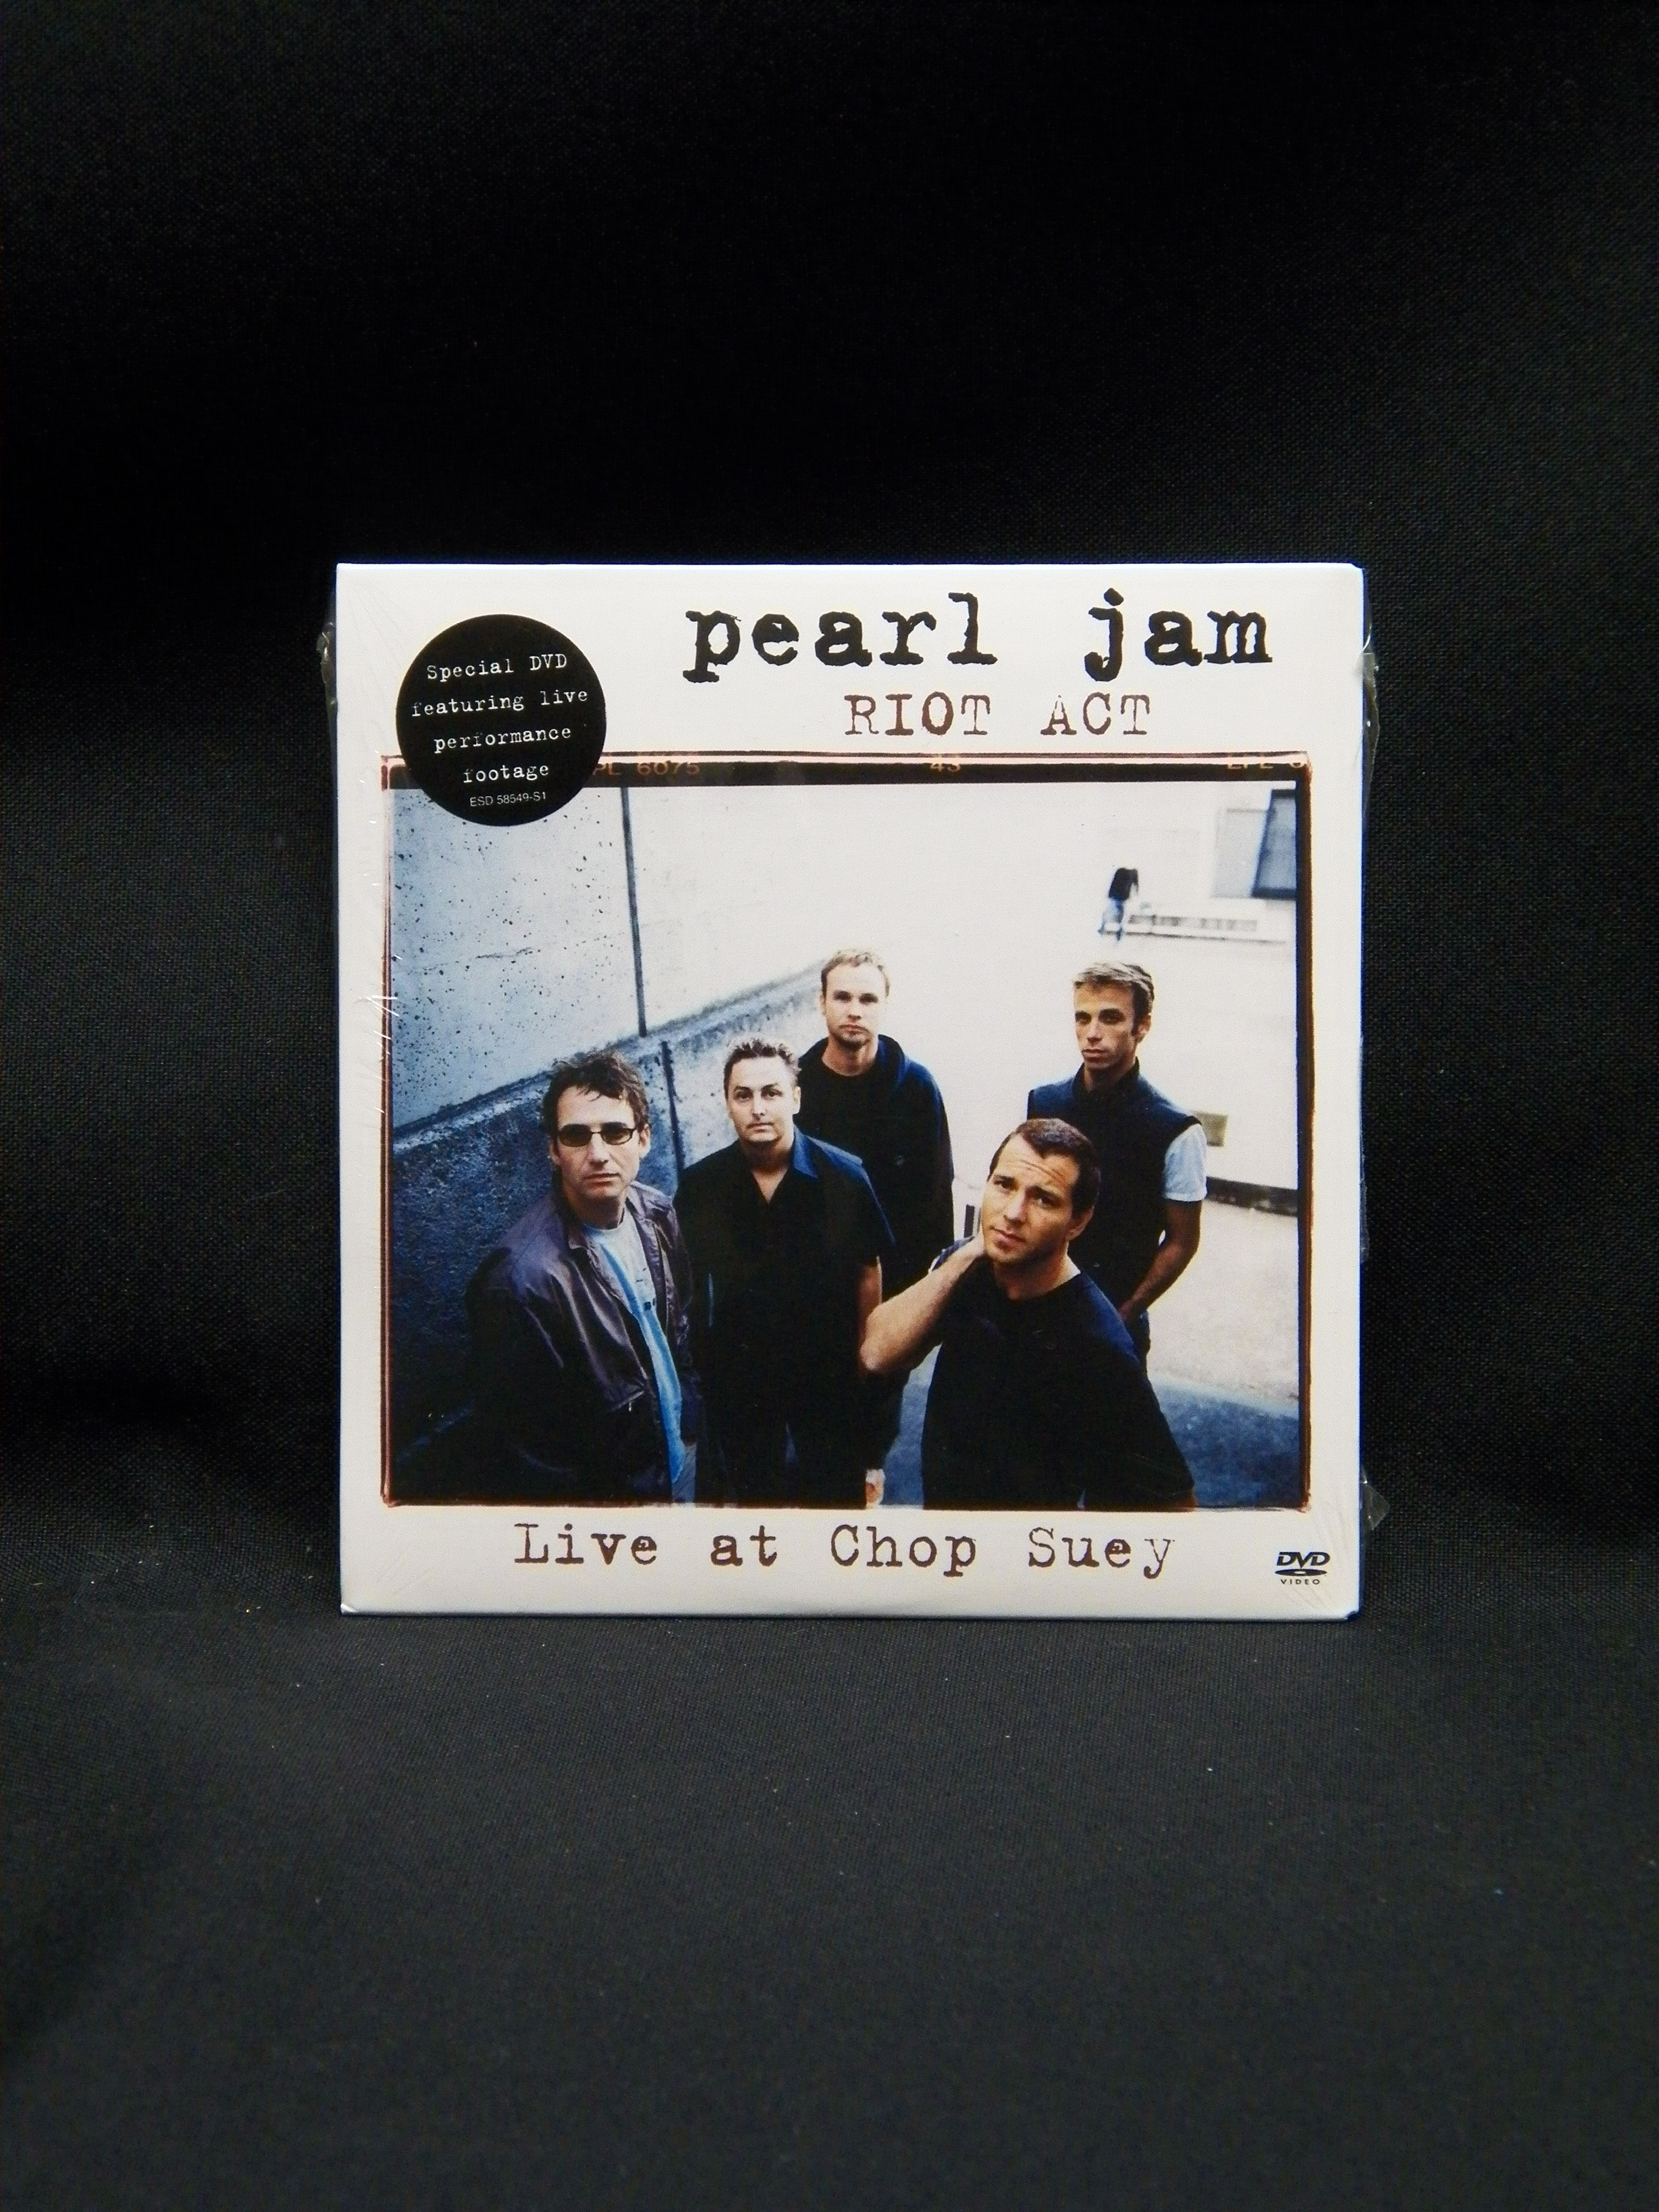 SEALED DVD Pearl Jam Riot Act: Live At Chop Suey 2003 Epic Promo -  VinylBay777